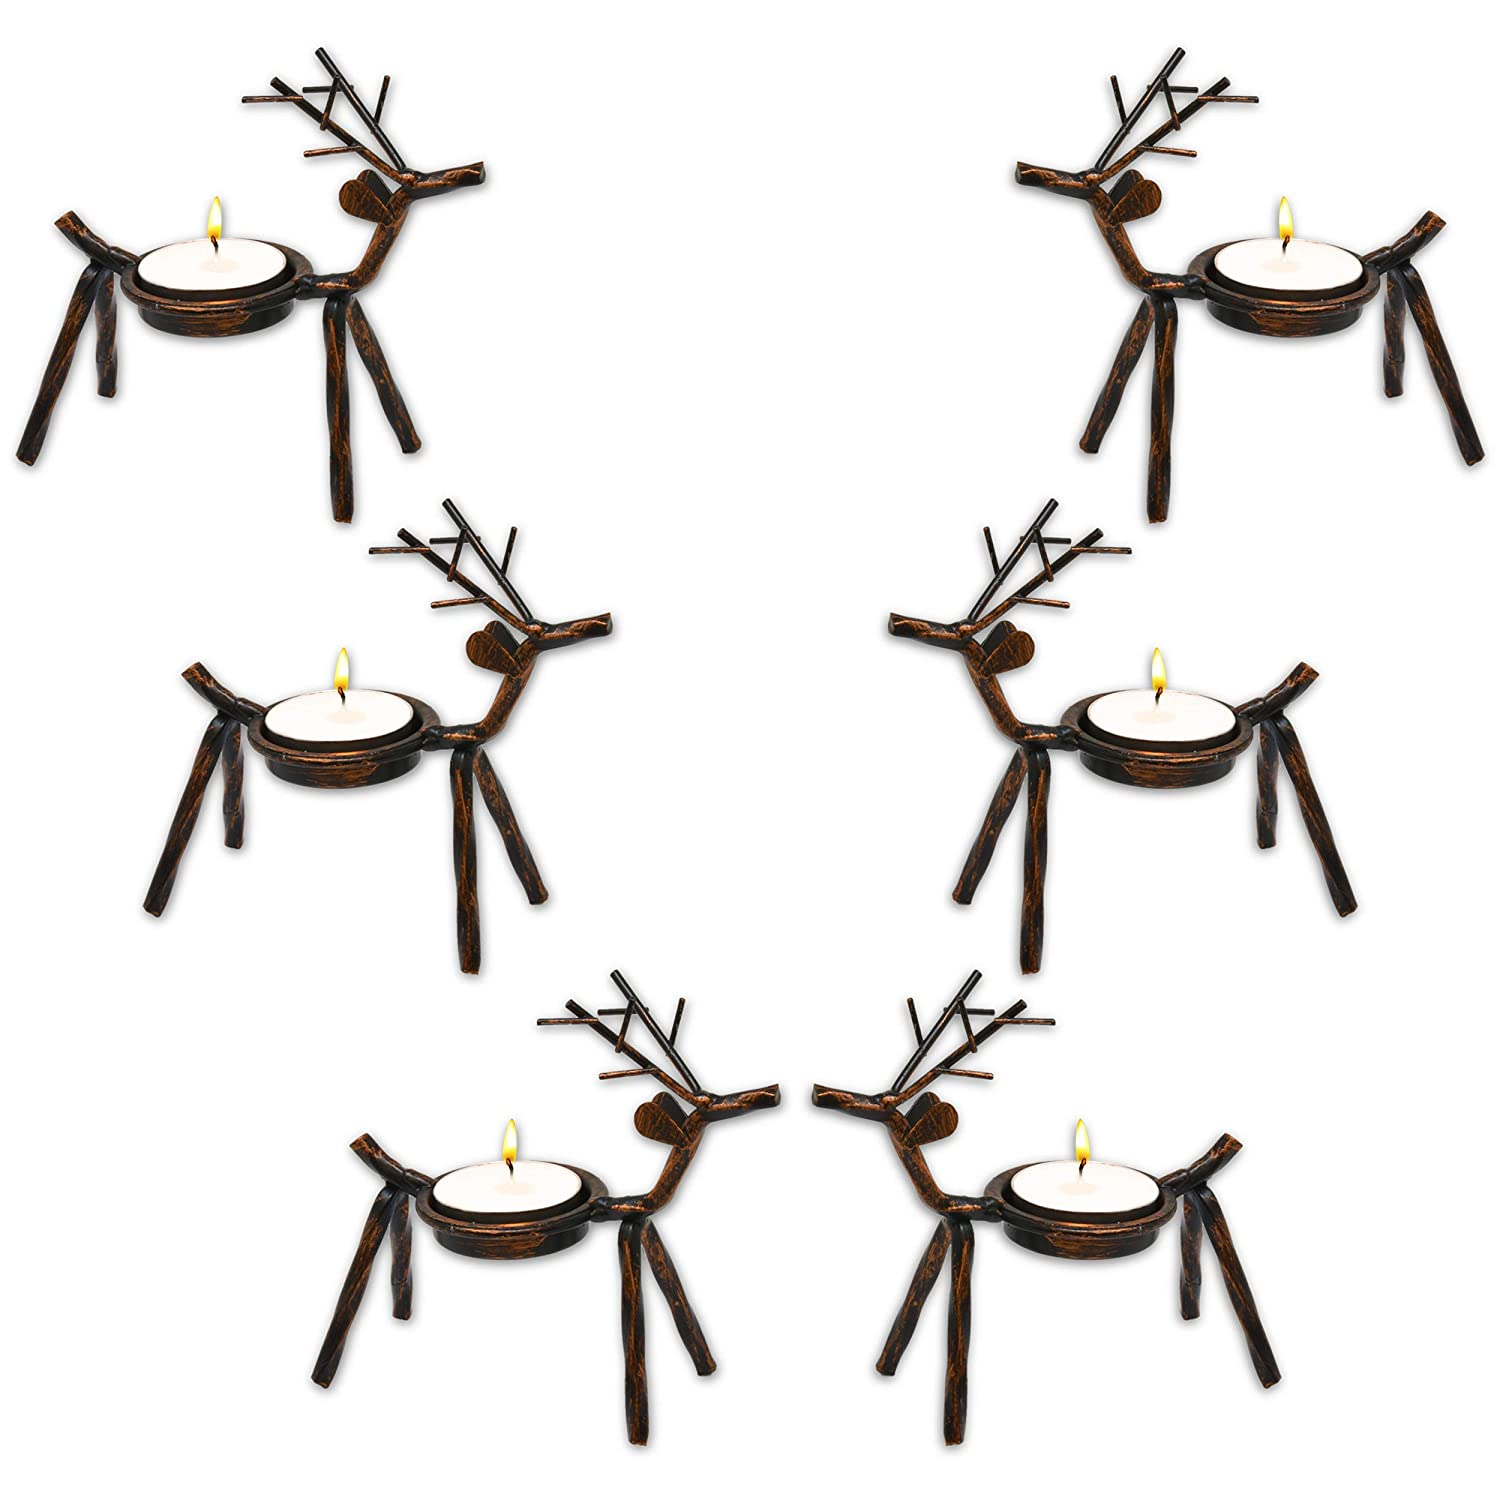 Gift Boutique Christmas Reindeer Tea Light Holder Table Decorations Centerpiece 6 Pack for Mantel Shelf Kitchen Office Desk Home Holiday Decor Brown Rustic